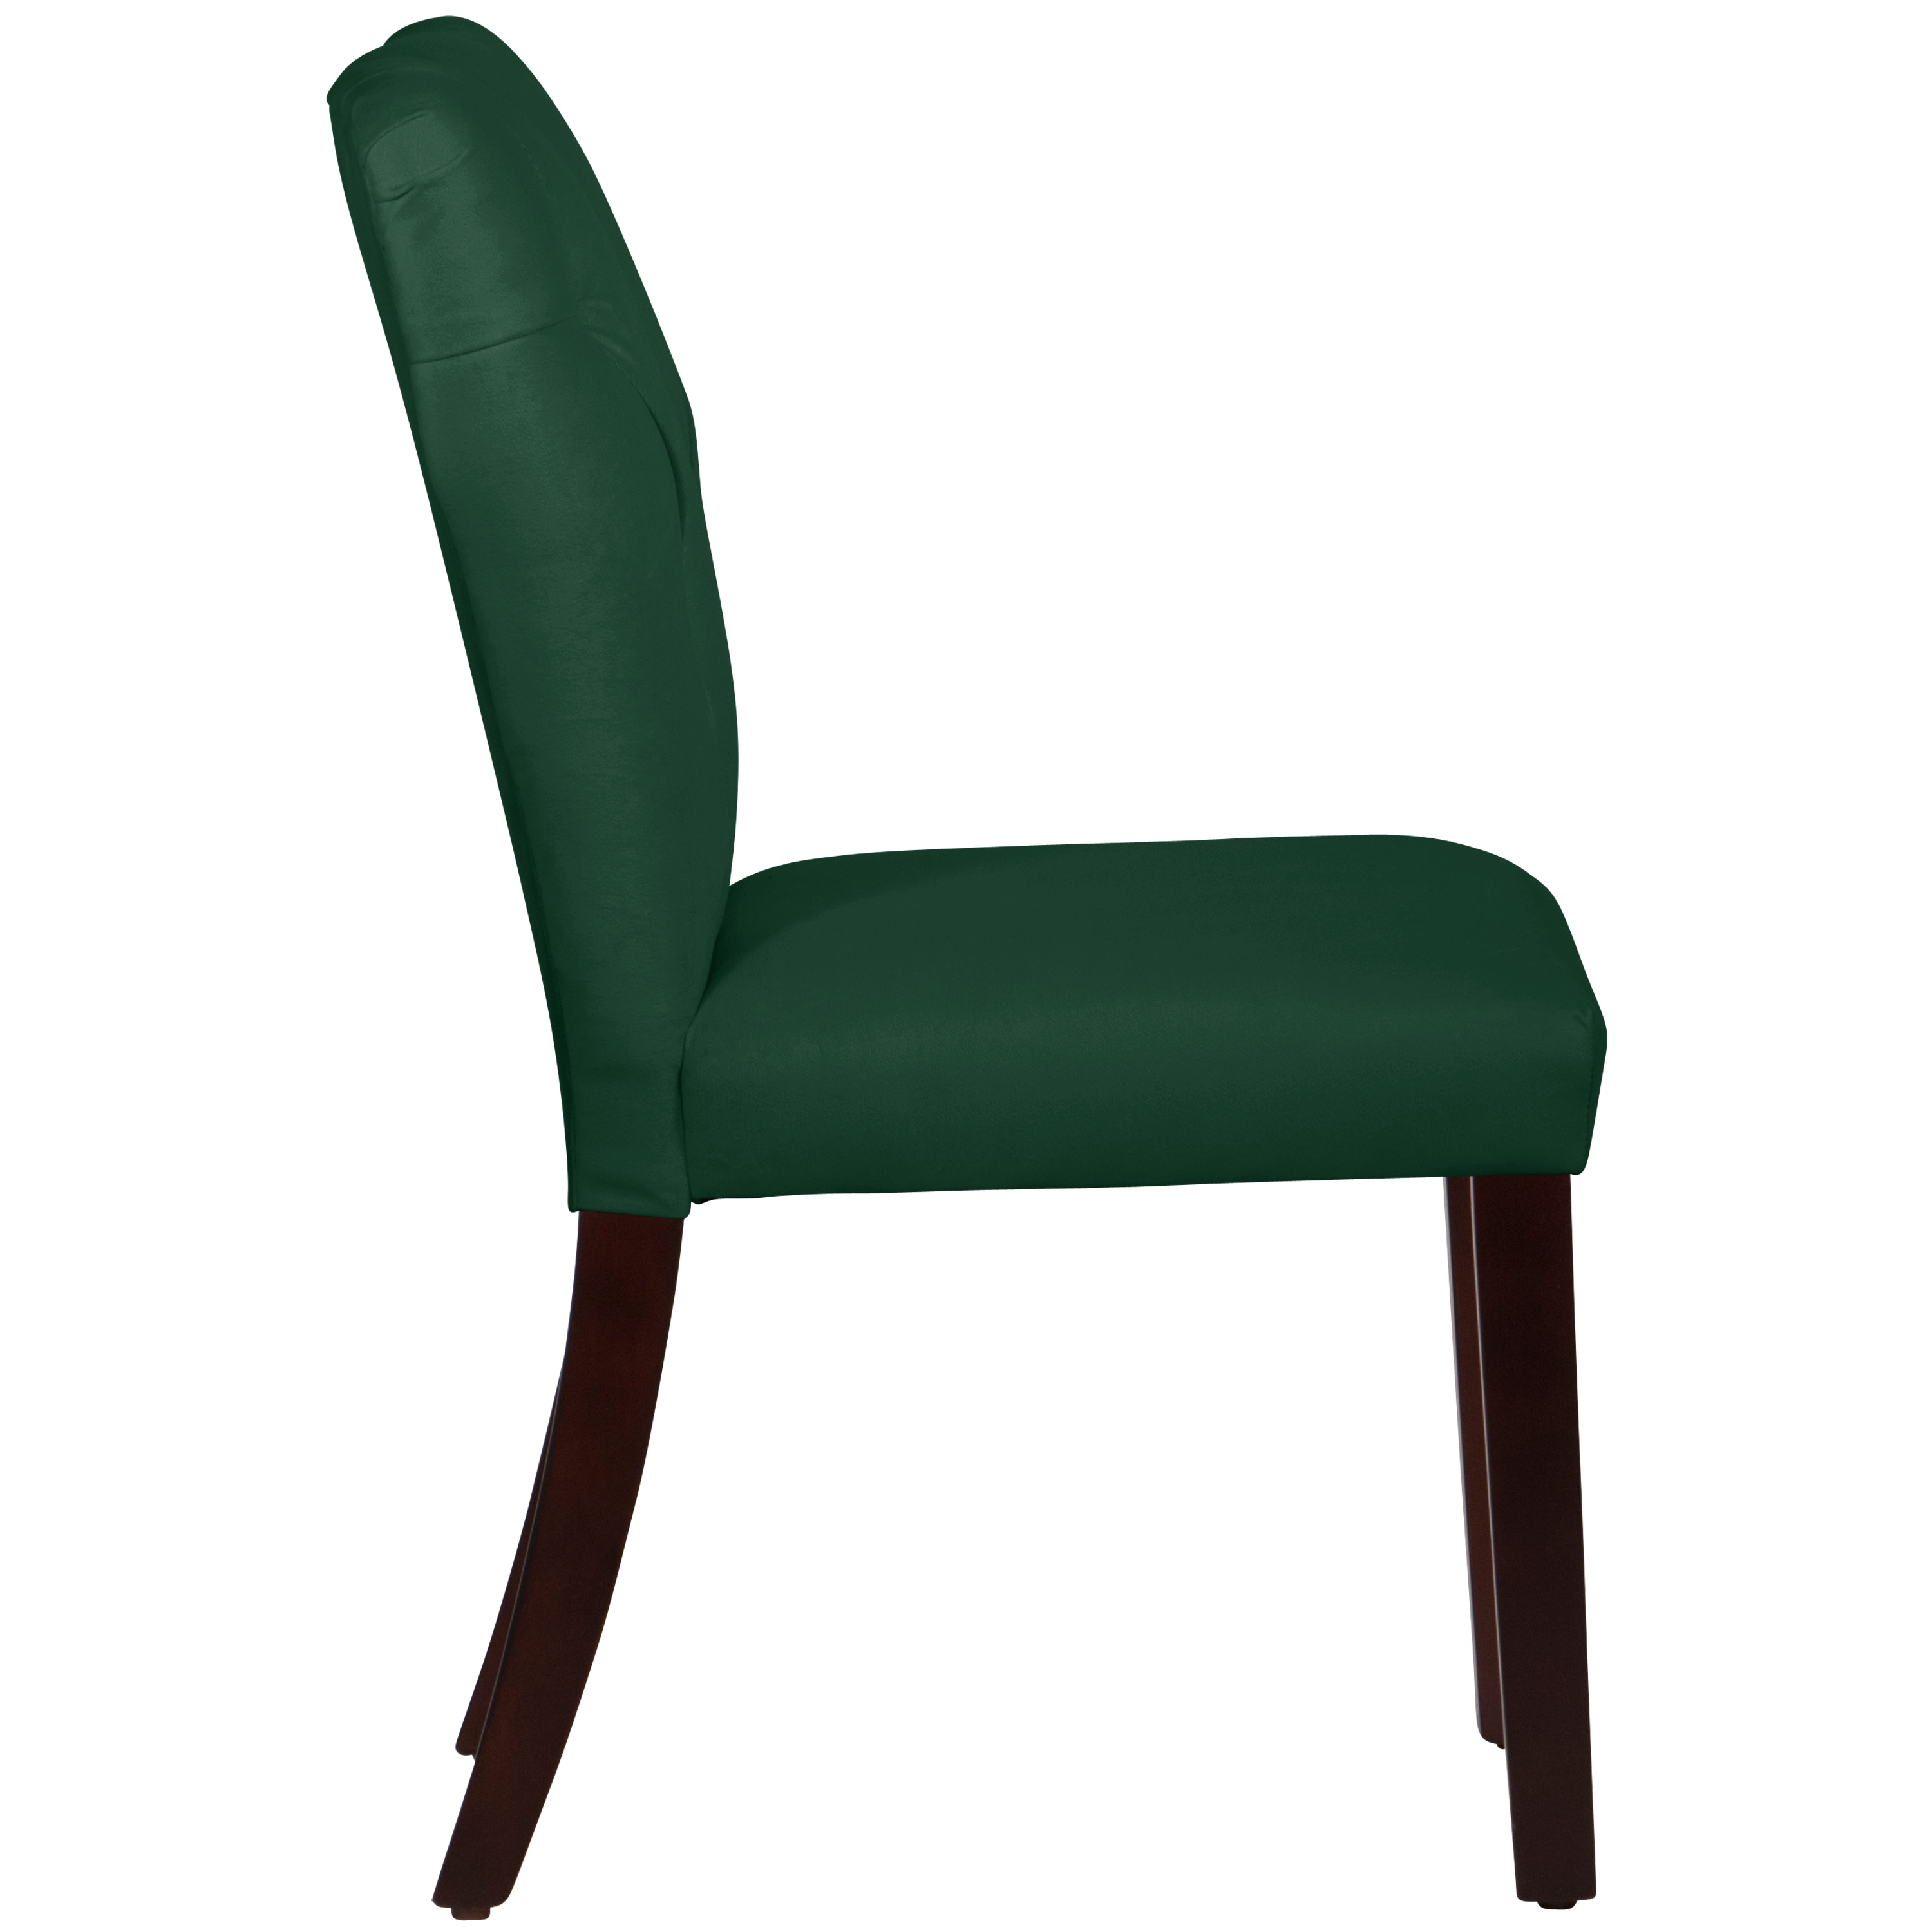 Attirant Shop Skyline Furniture Tufted Hourglass Dining Chair In Velvet Emerald    Free Shipping Today   Overstock.com   9570516